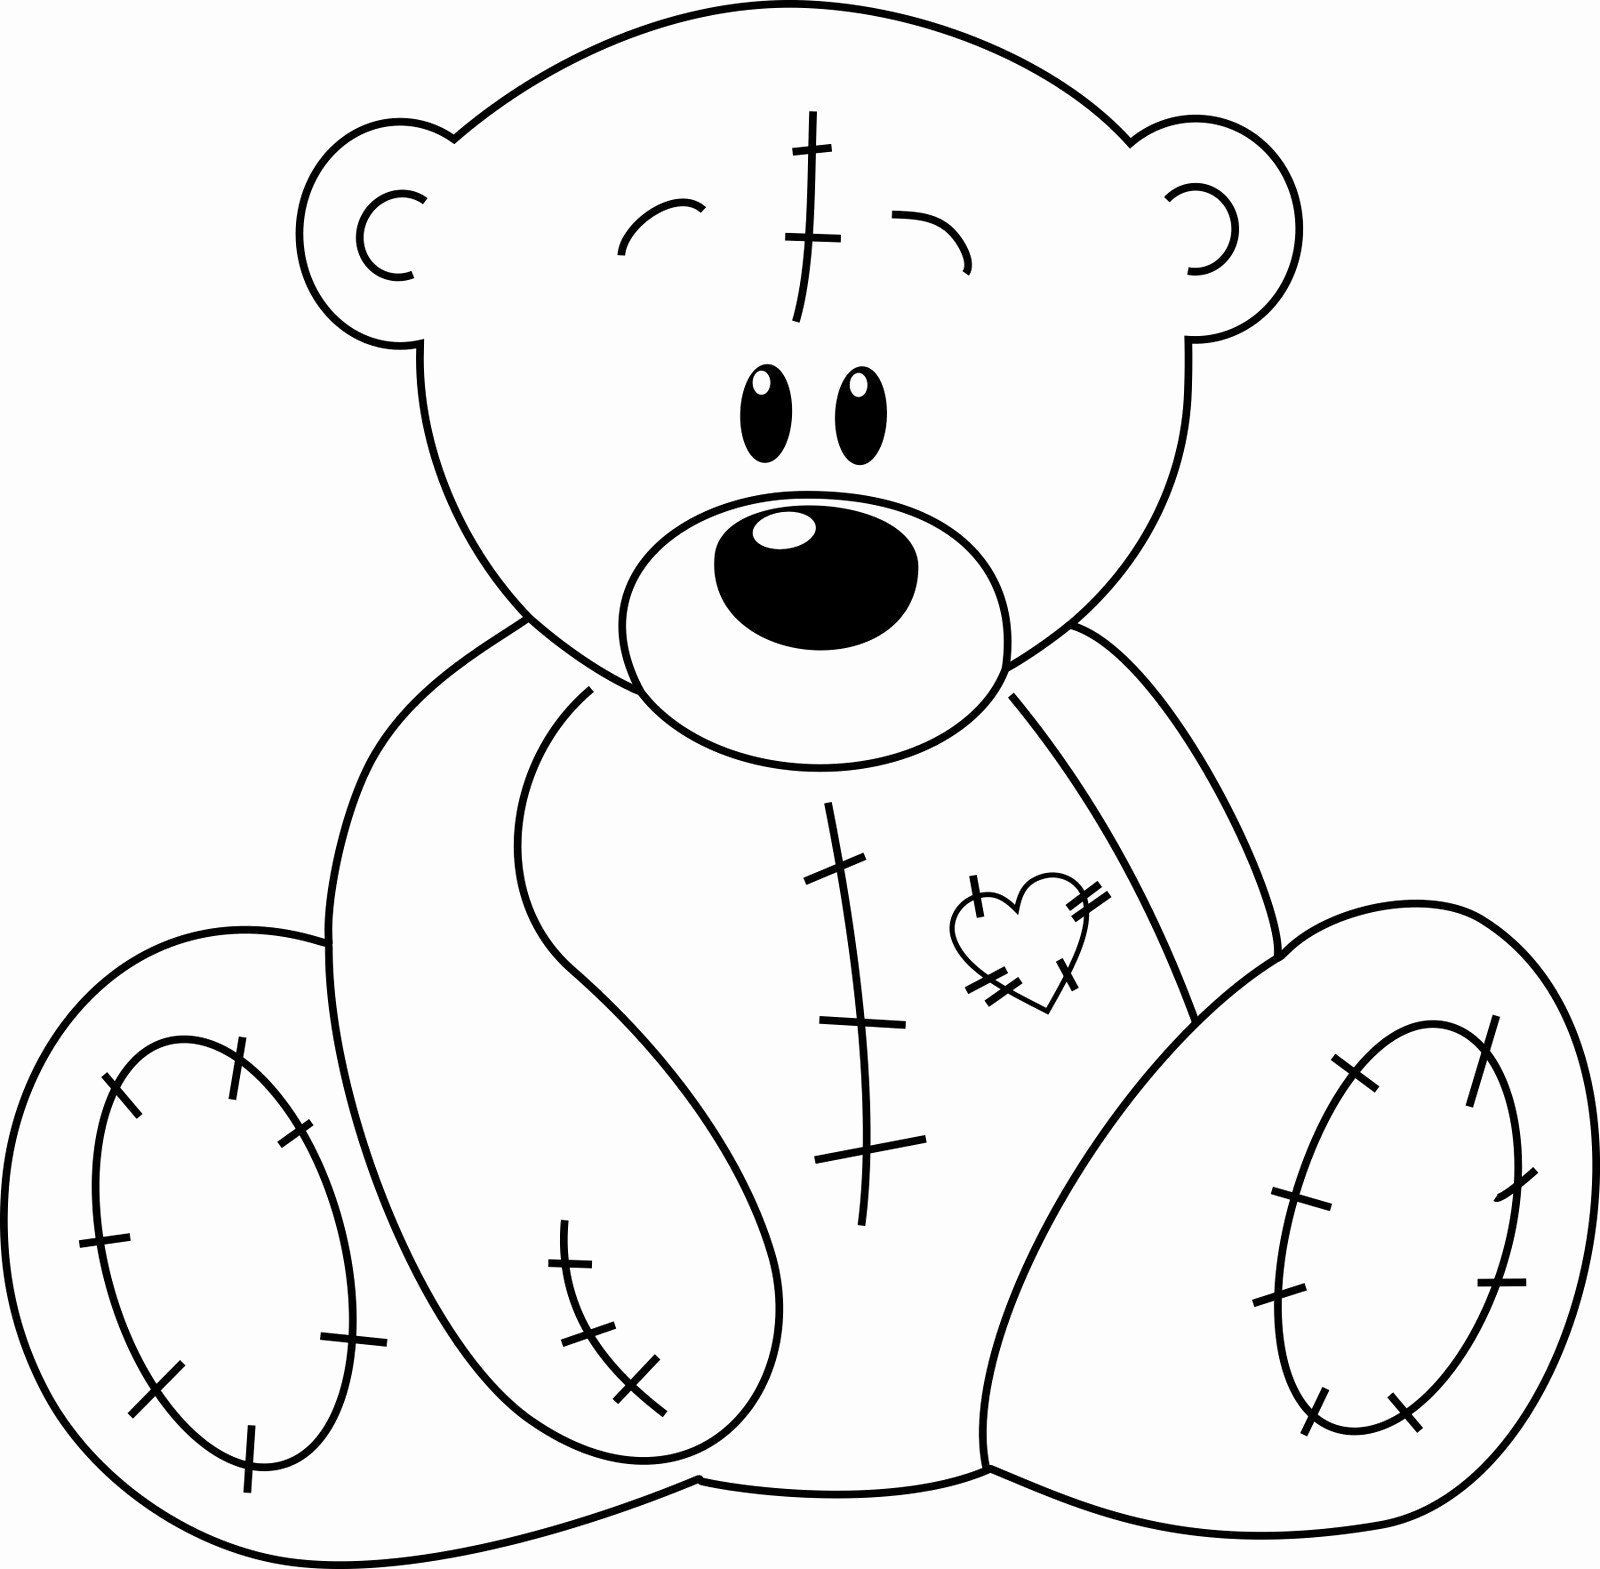 Toys Coloring Book Pdf Best Of Teddy Bear Coloring Page Best Teddy Bear Coloring Pages Teddy Bear Coloring Pages Bear Coloring Pages Teddy Bear Drawing